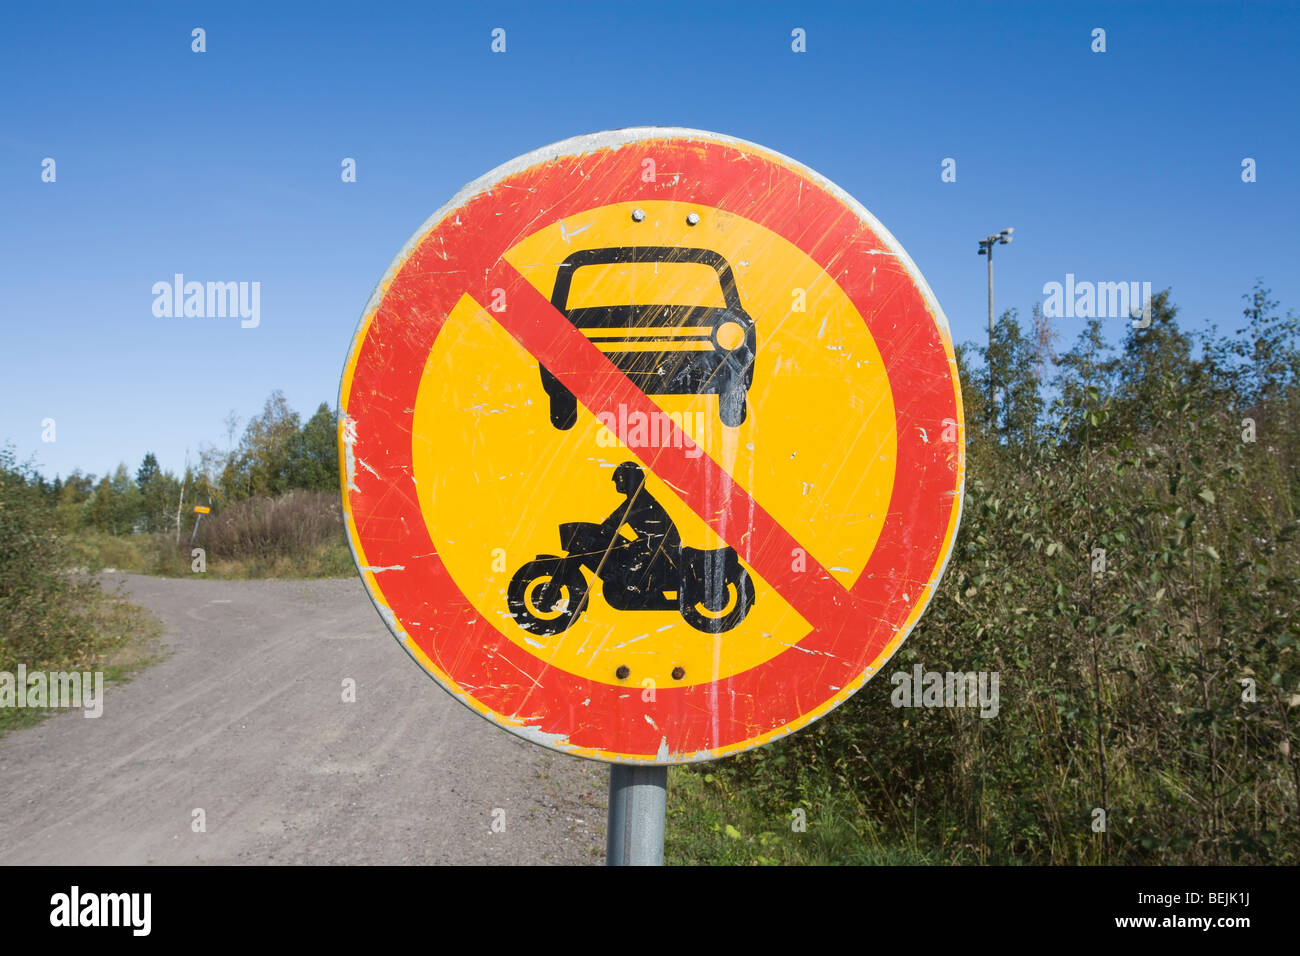 No entry for power-driven vehicles traffic sign - Stock Image